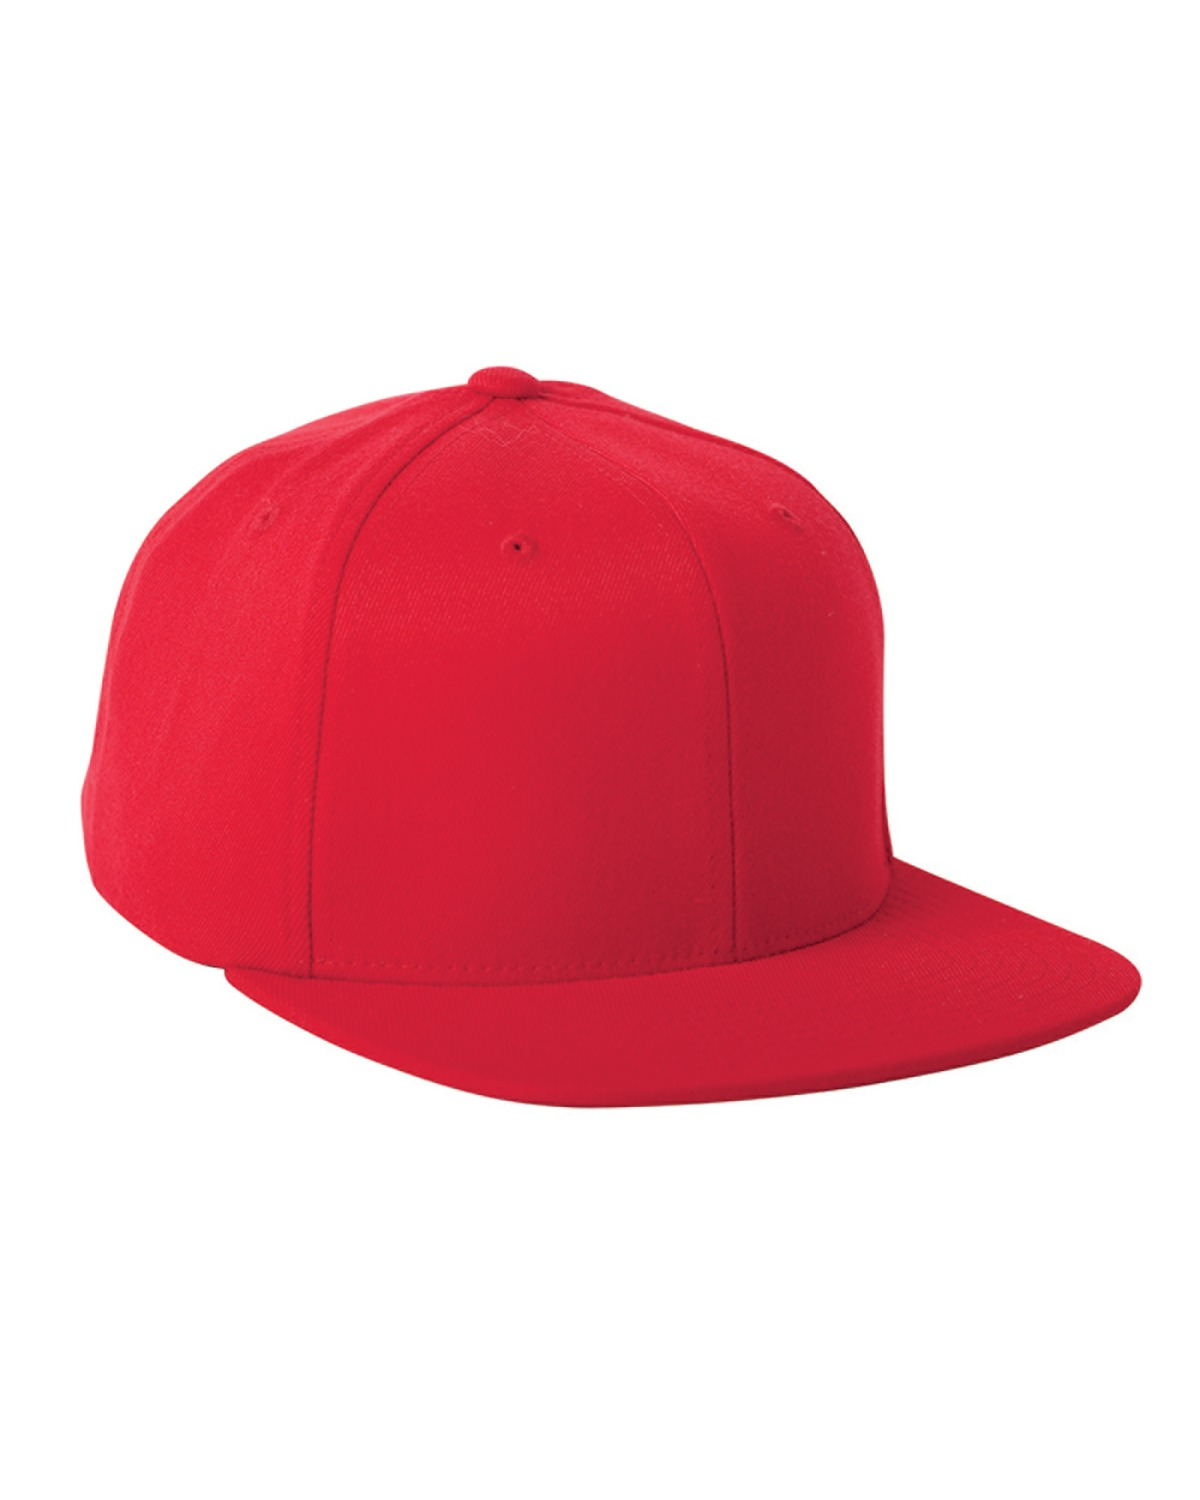 Flexfit Wool Blend Flat Bill Snapback Cap - 110F